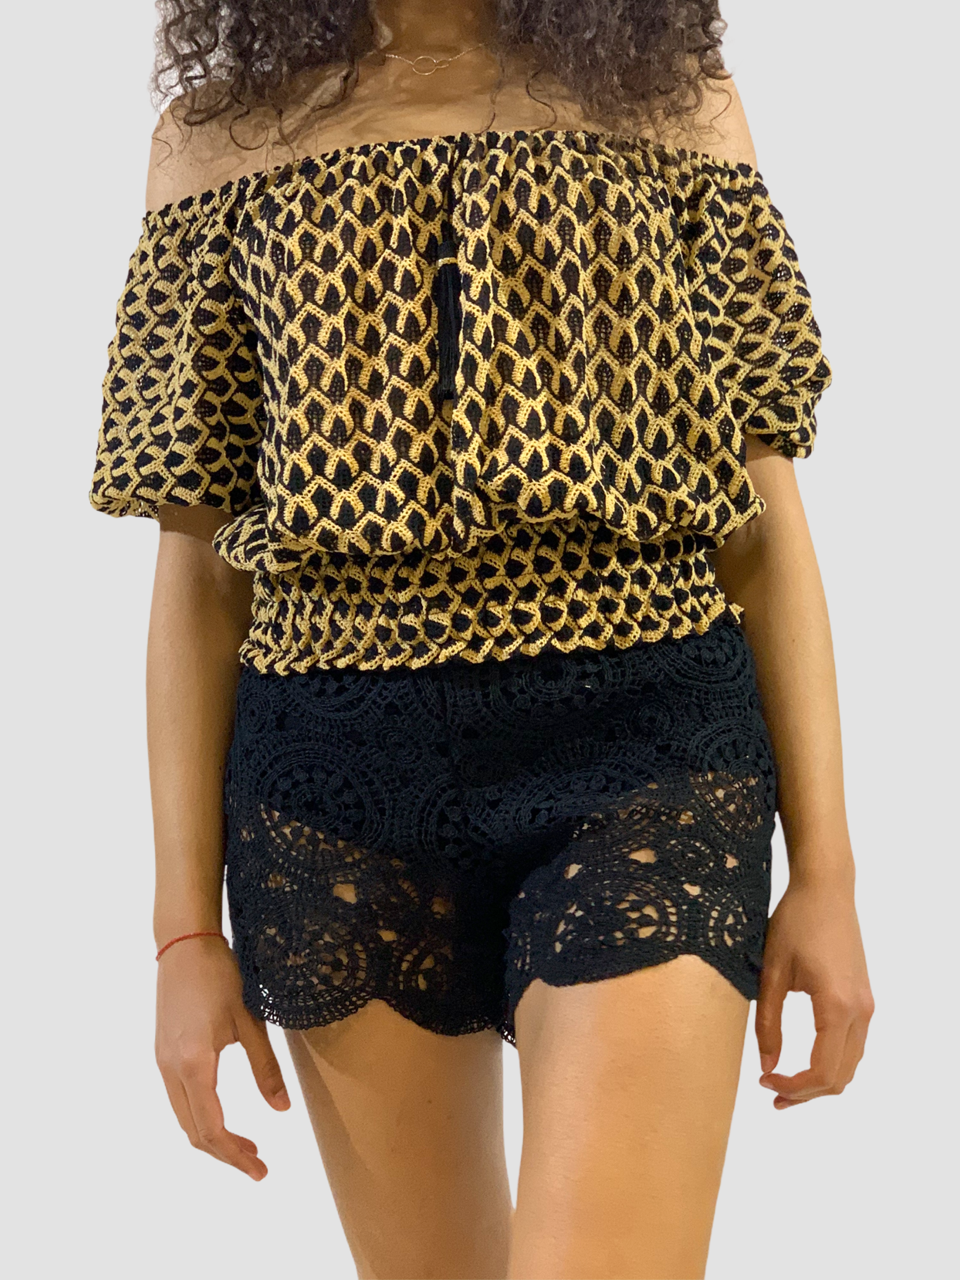 SHOPPING ON LINE PHO FIRENZE SHORT NEW COLLECTION WOMEN'S SPRING SUMMER 2021